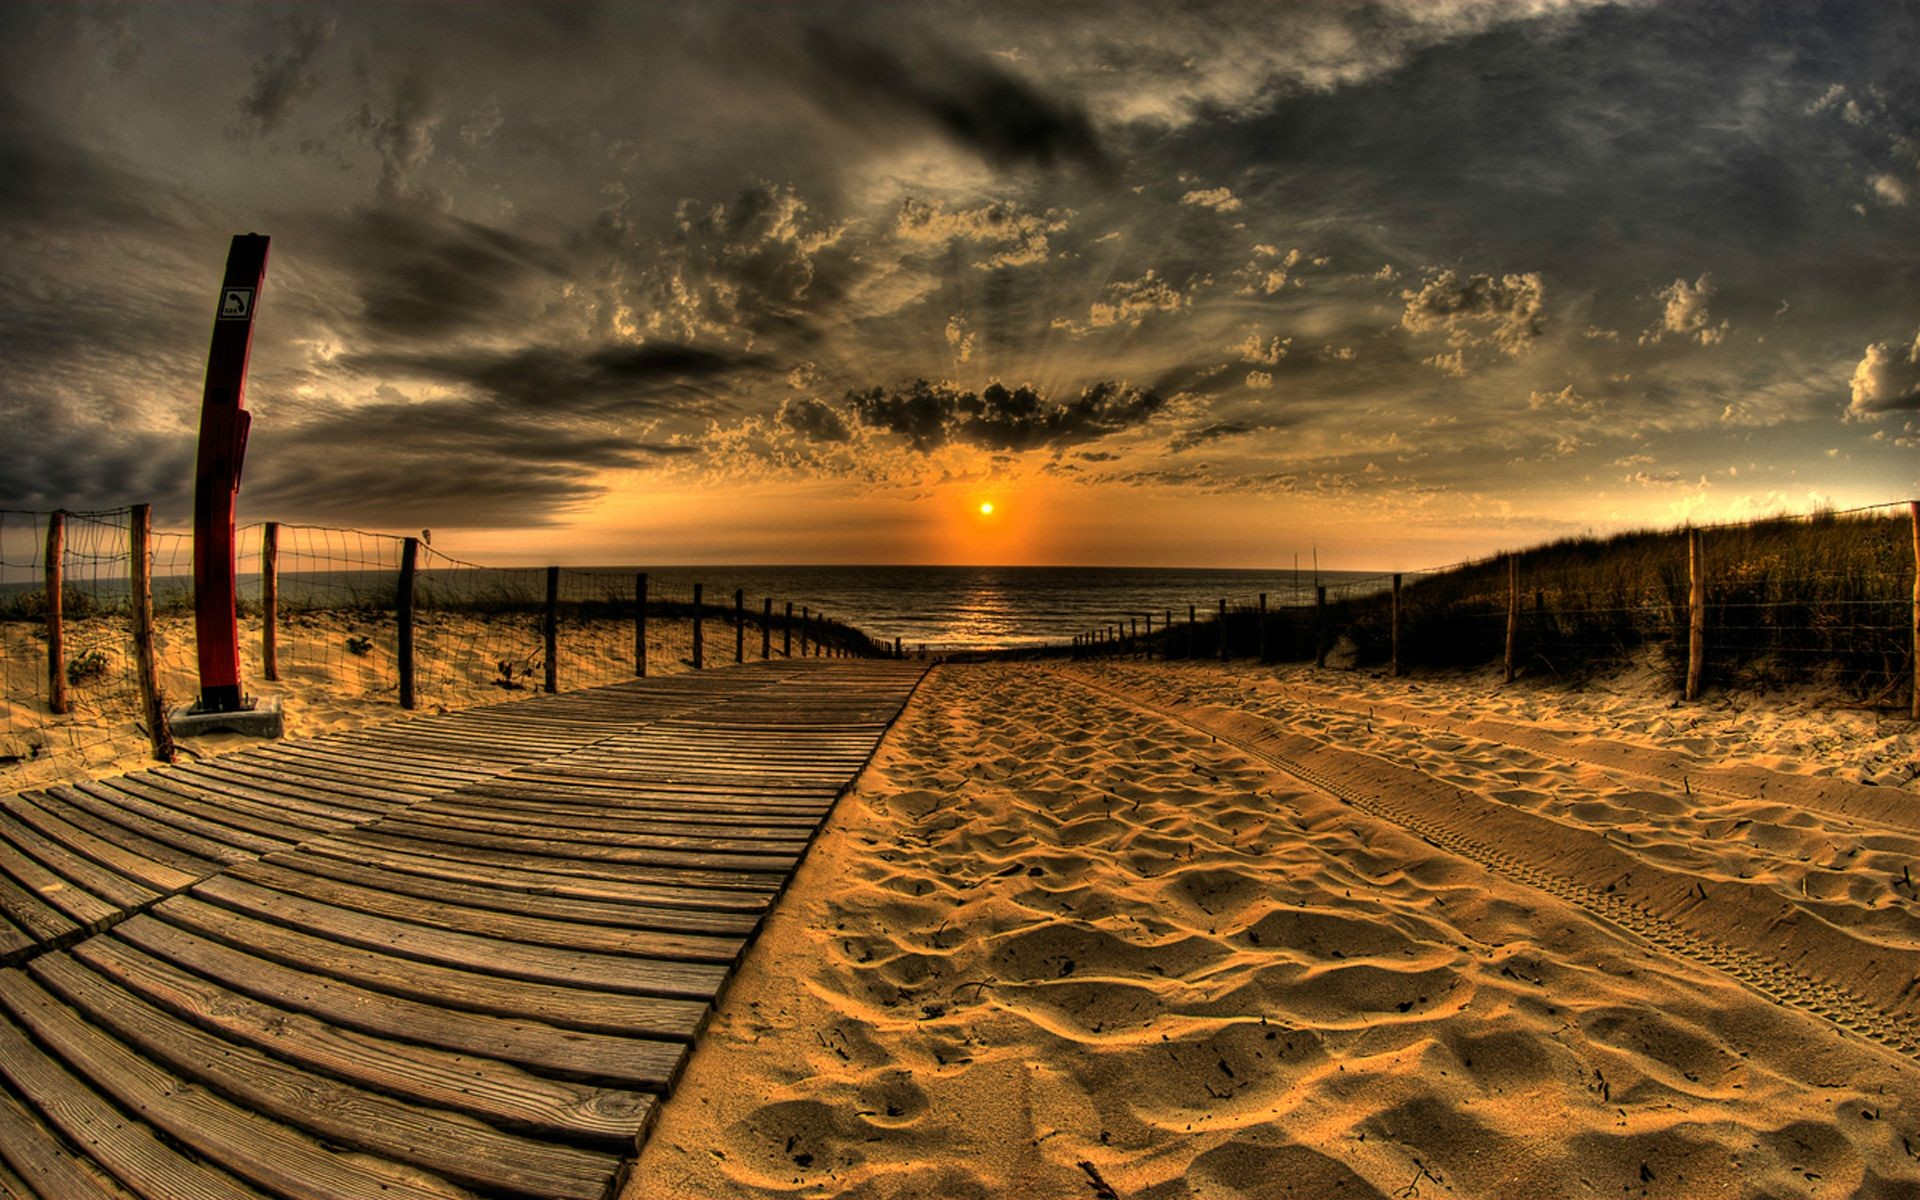 sunset screensavers and wallpaper (63+ images)